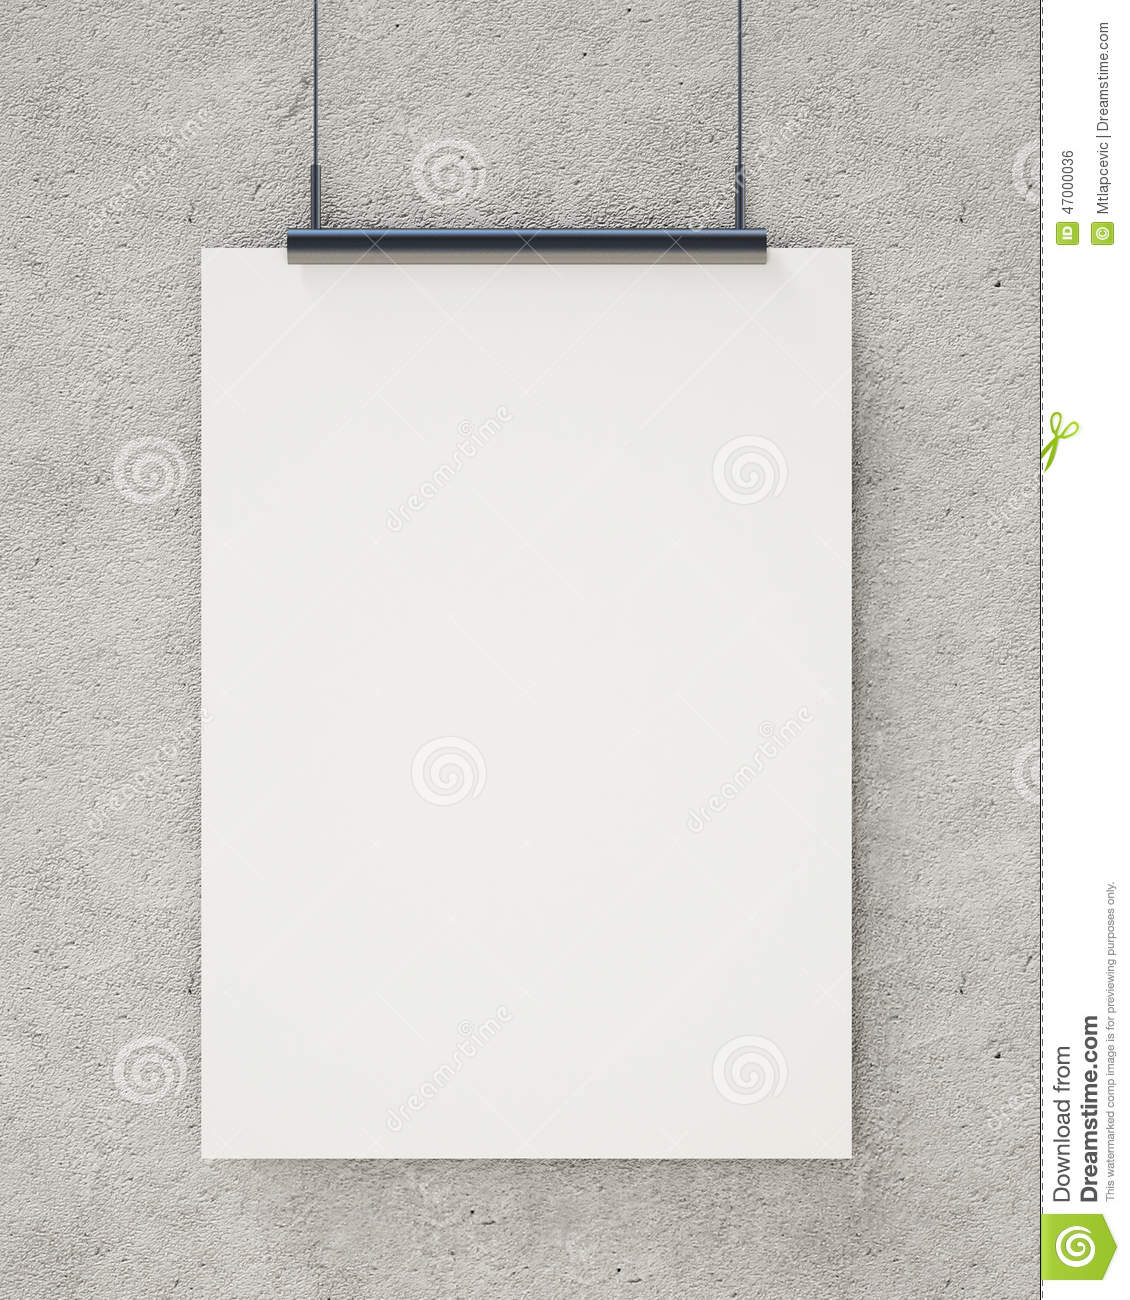 wall templates for hanging pictures - mock up blank white hanging poster on concrete wall